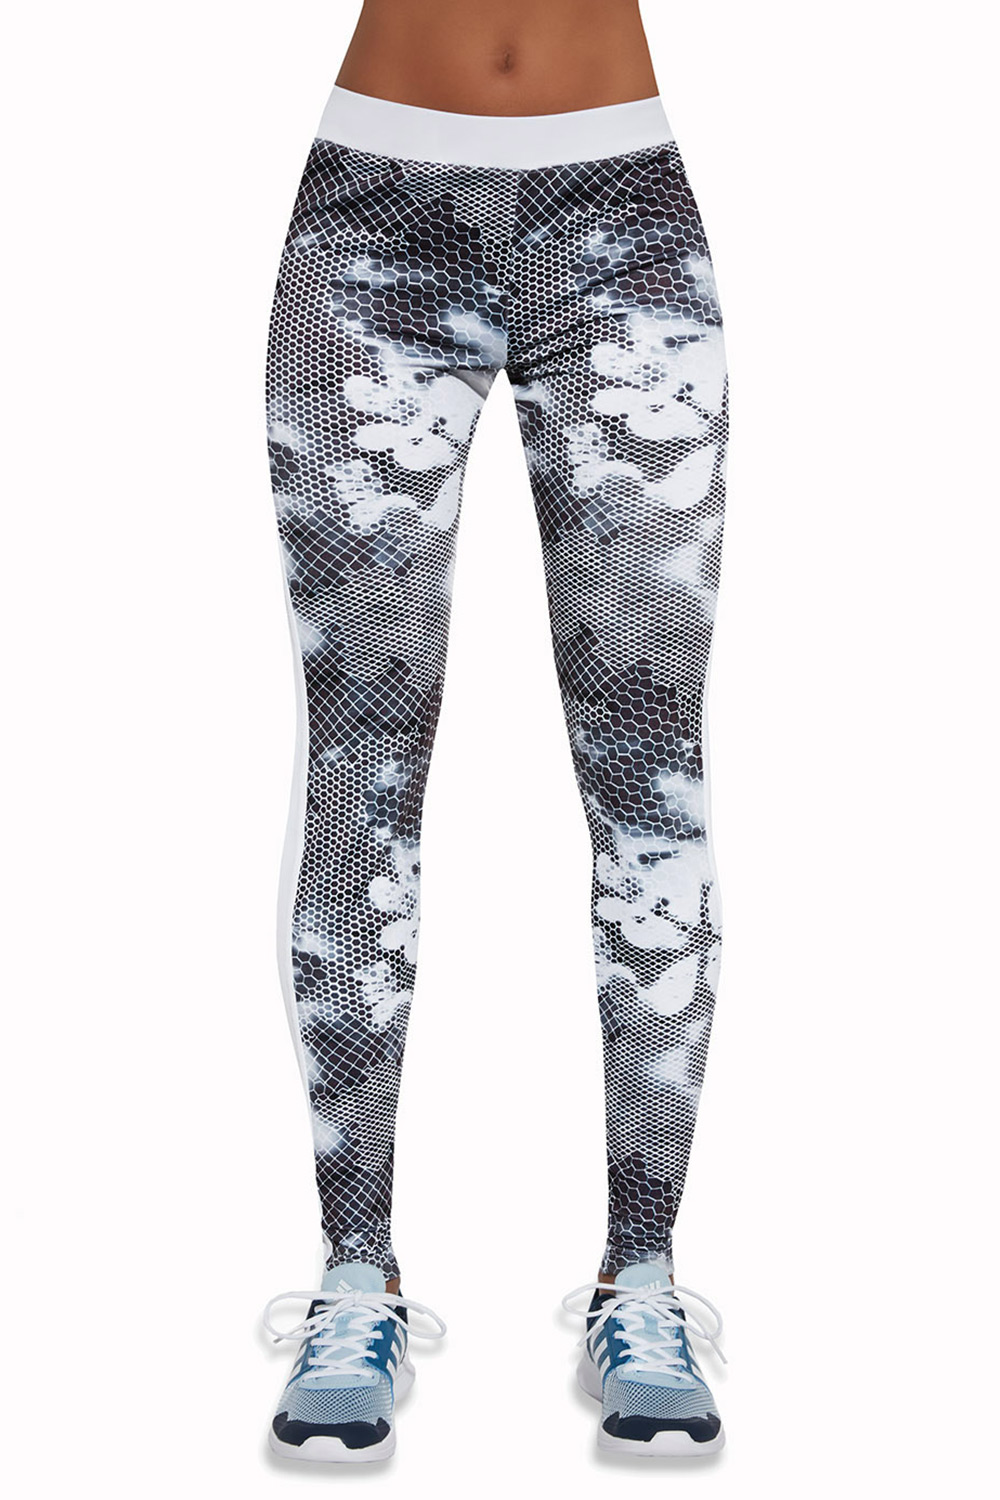 Code sport leggings